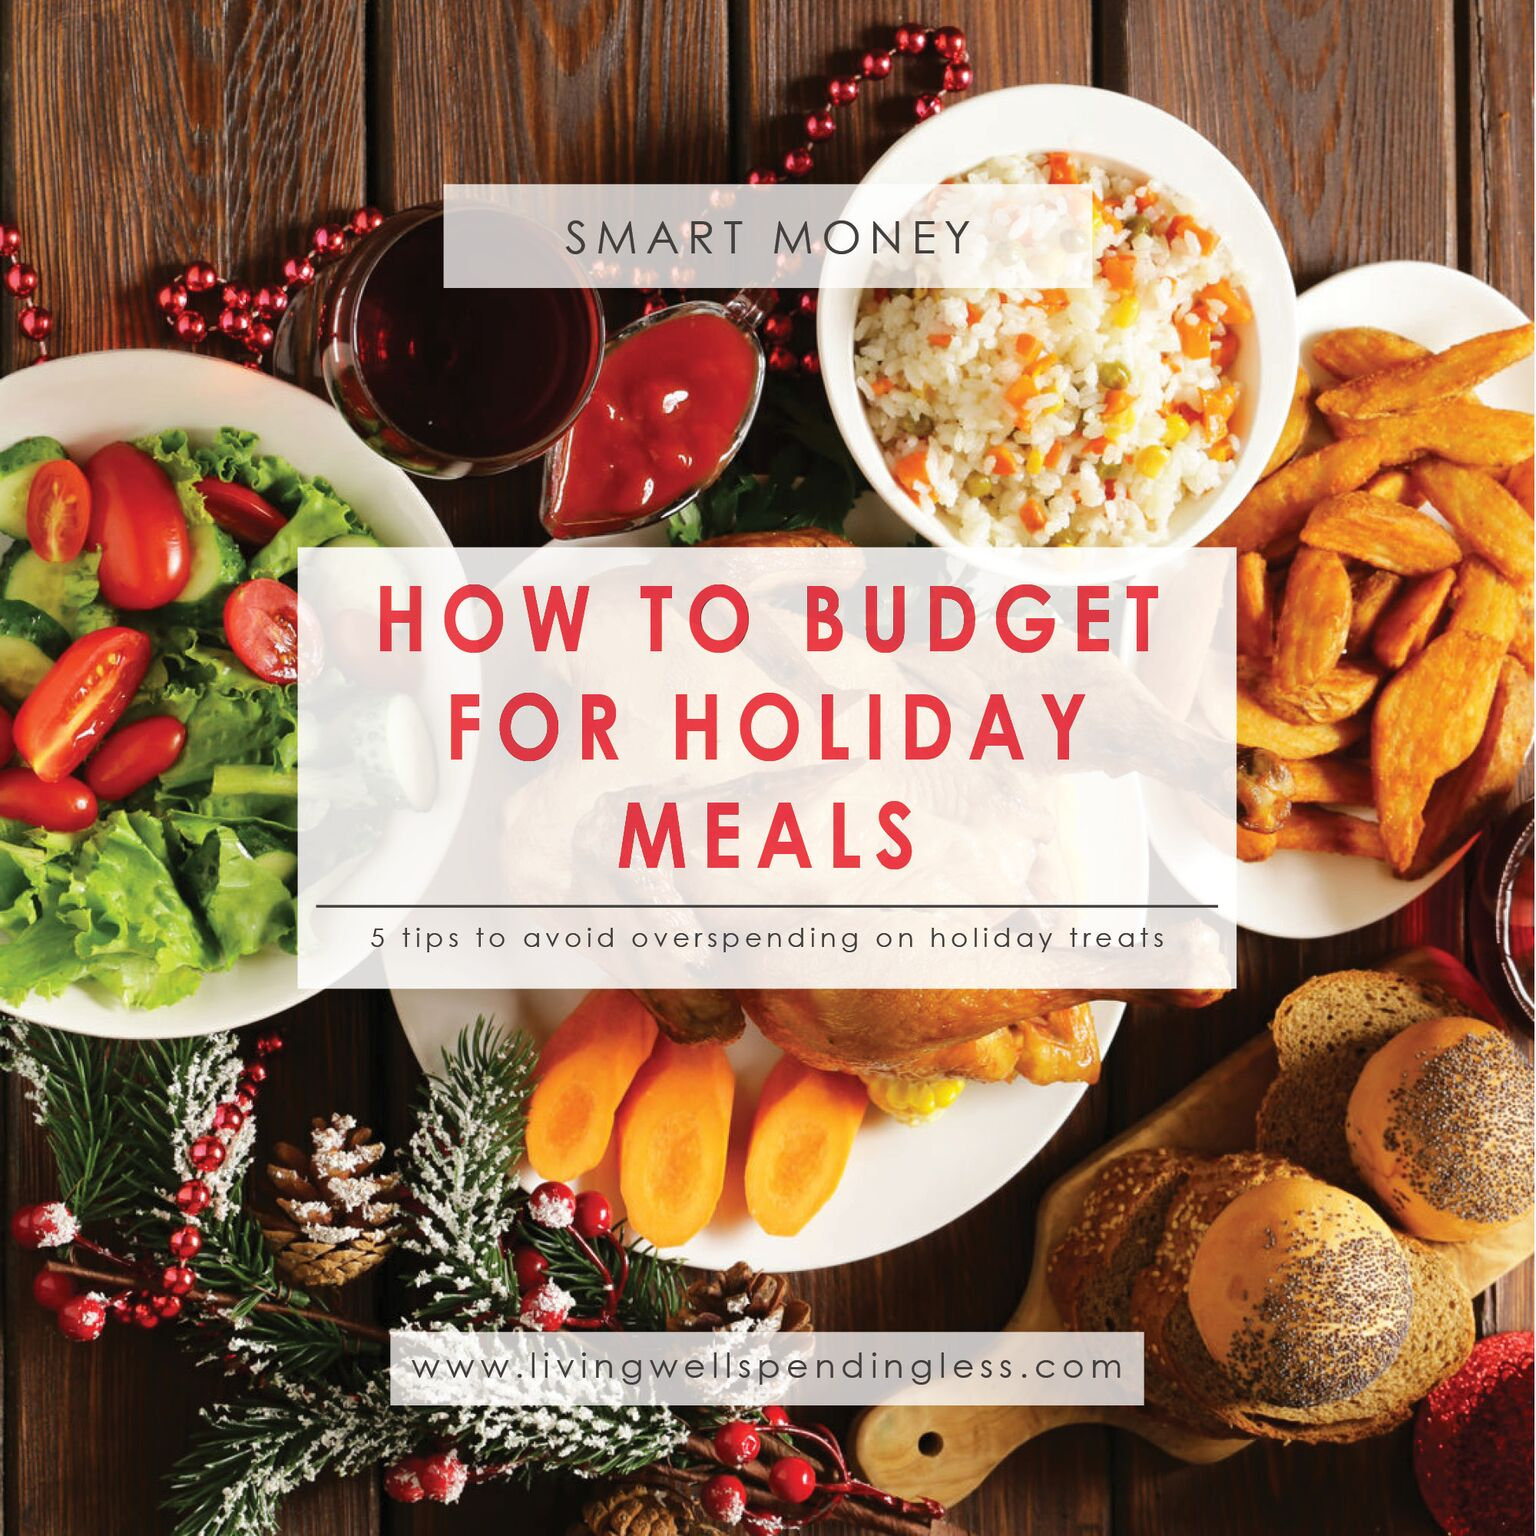 How to Budget for Holiday Meals⎢Avoid Overspending on Holiday Treats⎢Smart Money⎢Budget⎢Financial Freedom⎢Holiday Spending